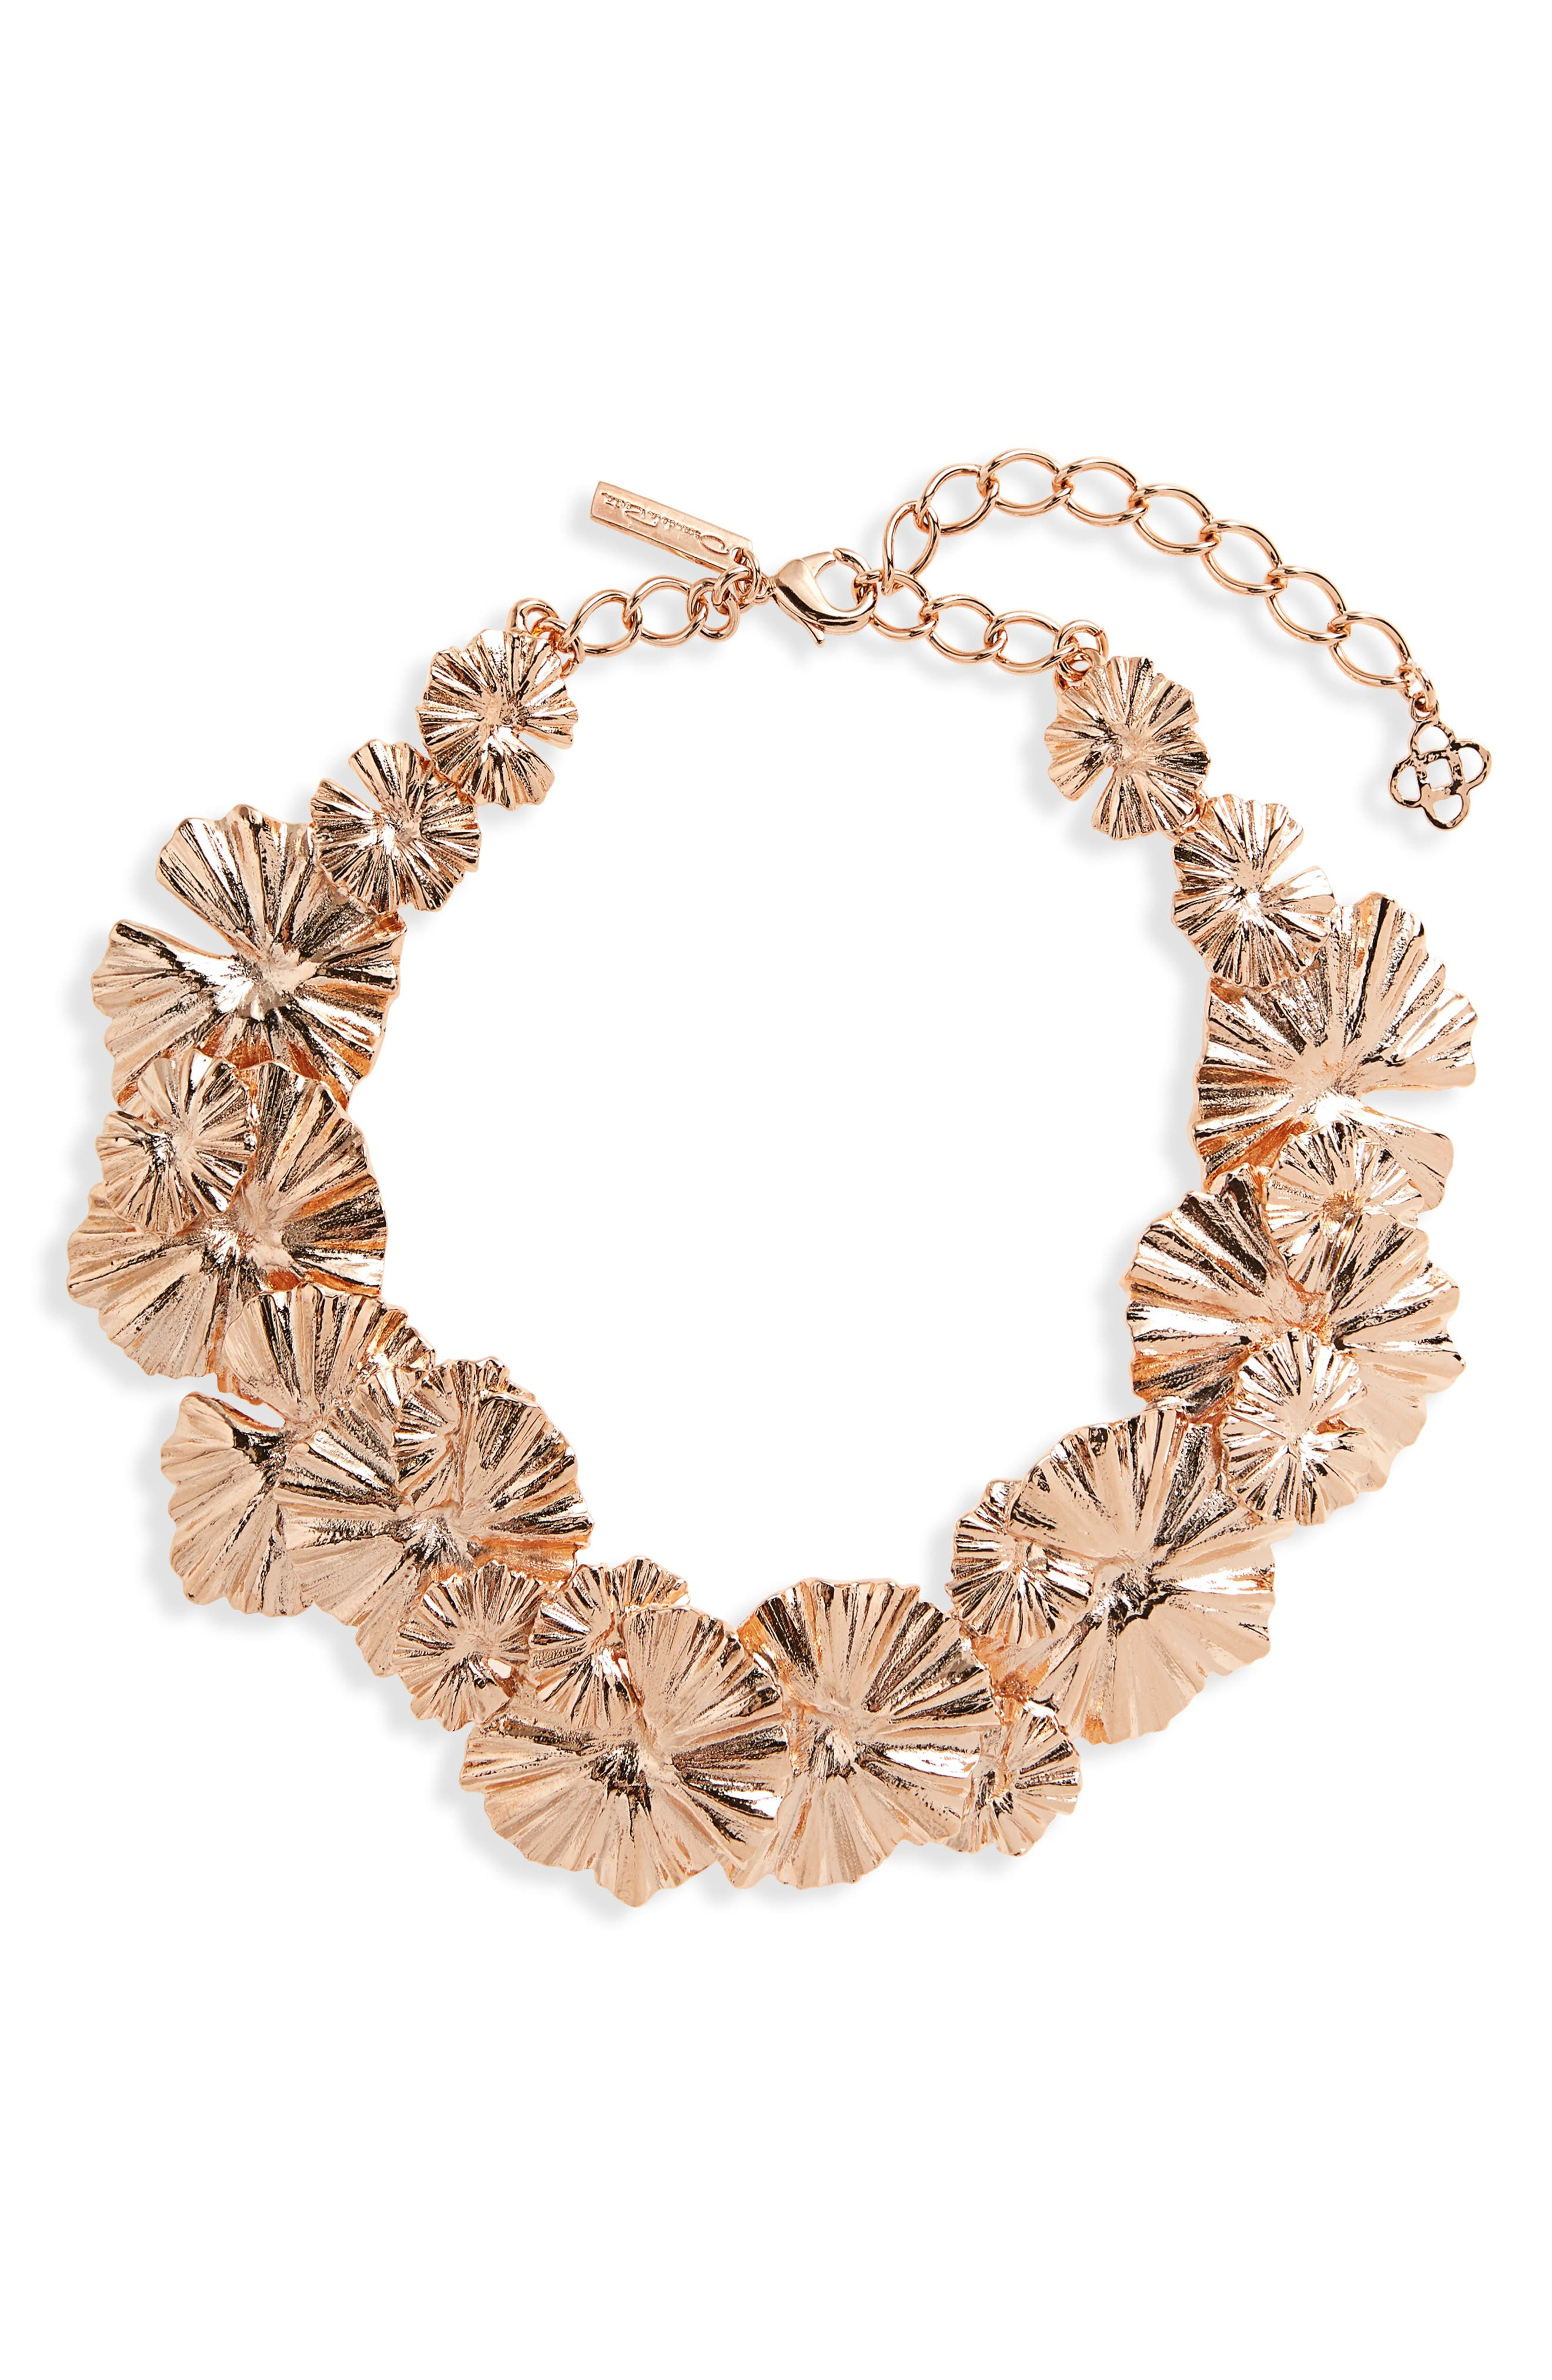 Wildflower Necklace,                             Main thumbnail 1, color,                             660